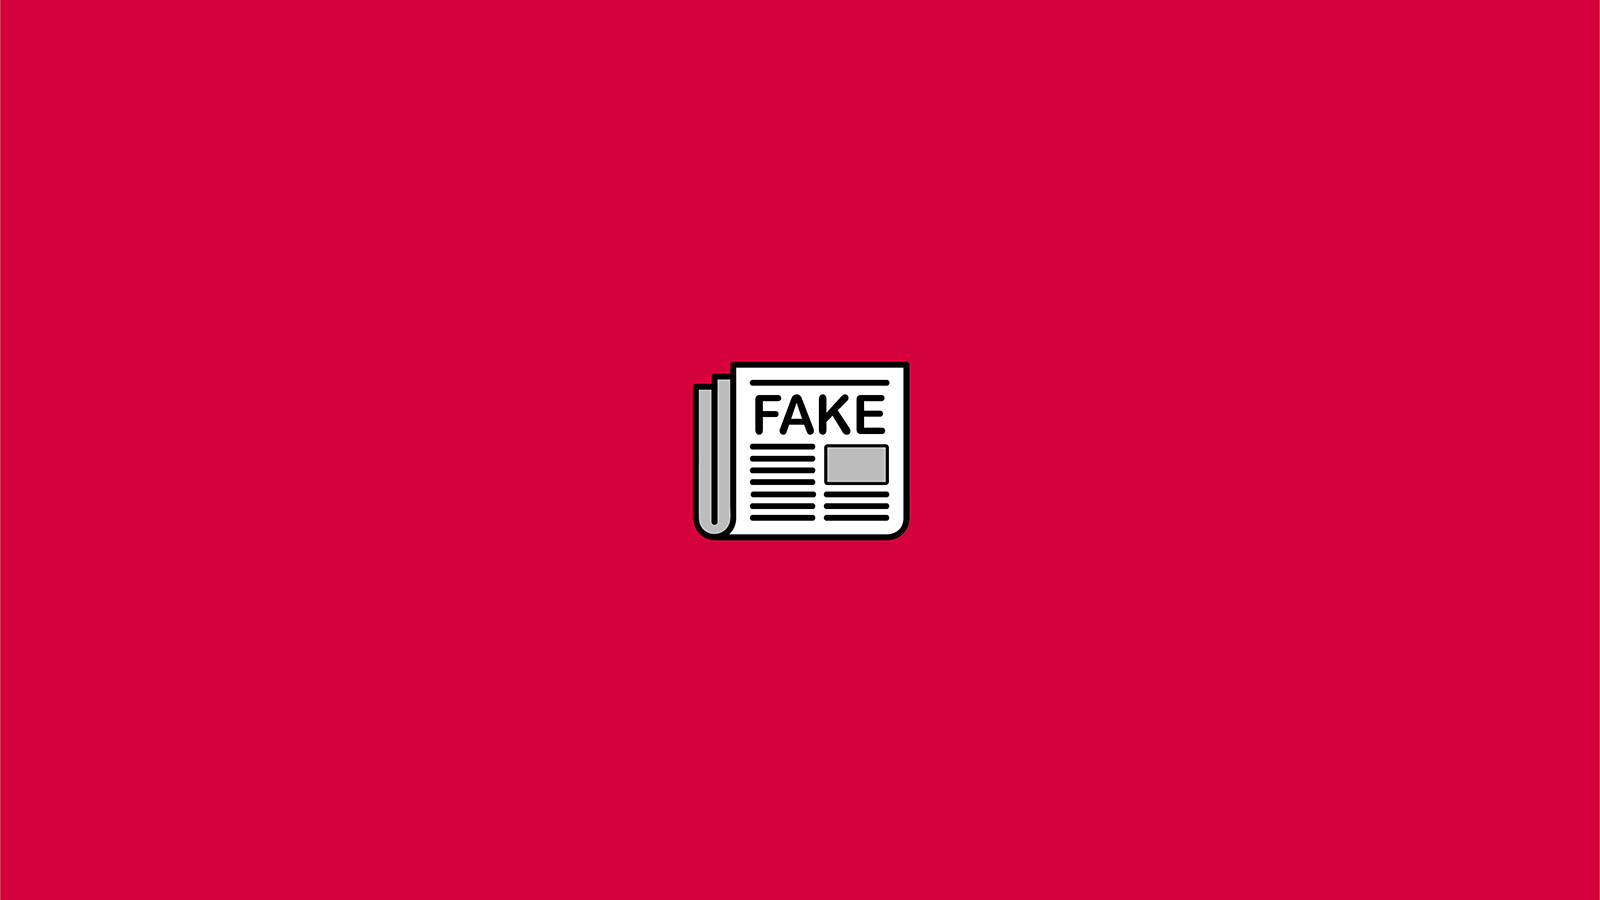 Trump, Facebook and the rise of fake news